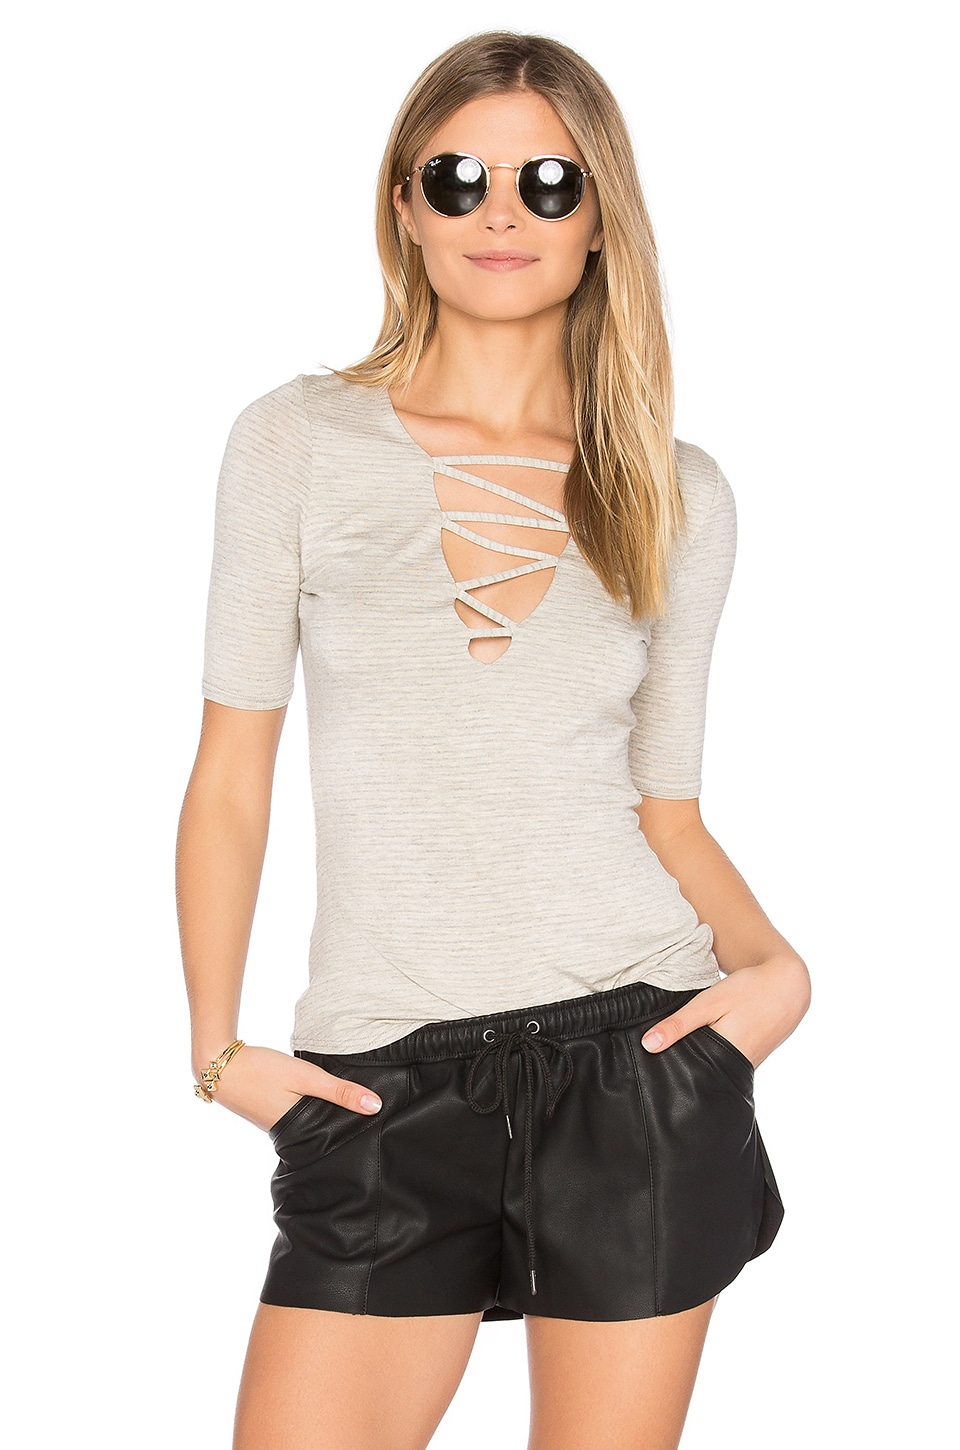 Riller & Fount Bobbie Criss Cross Top in Honeycomb